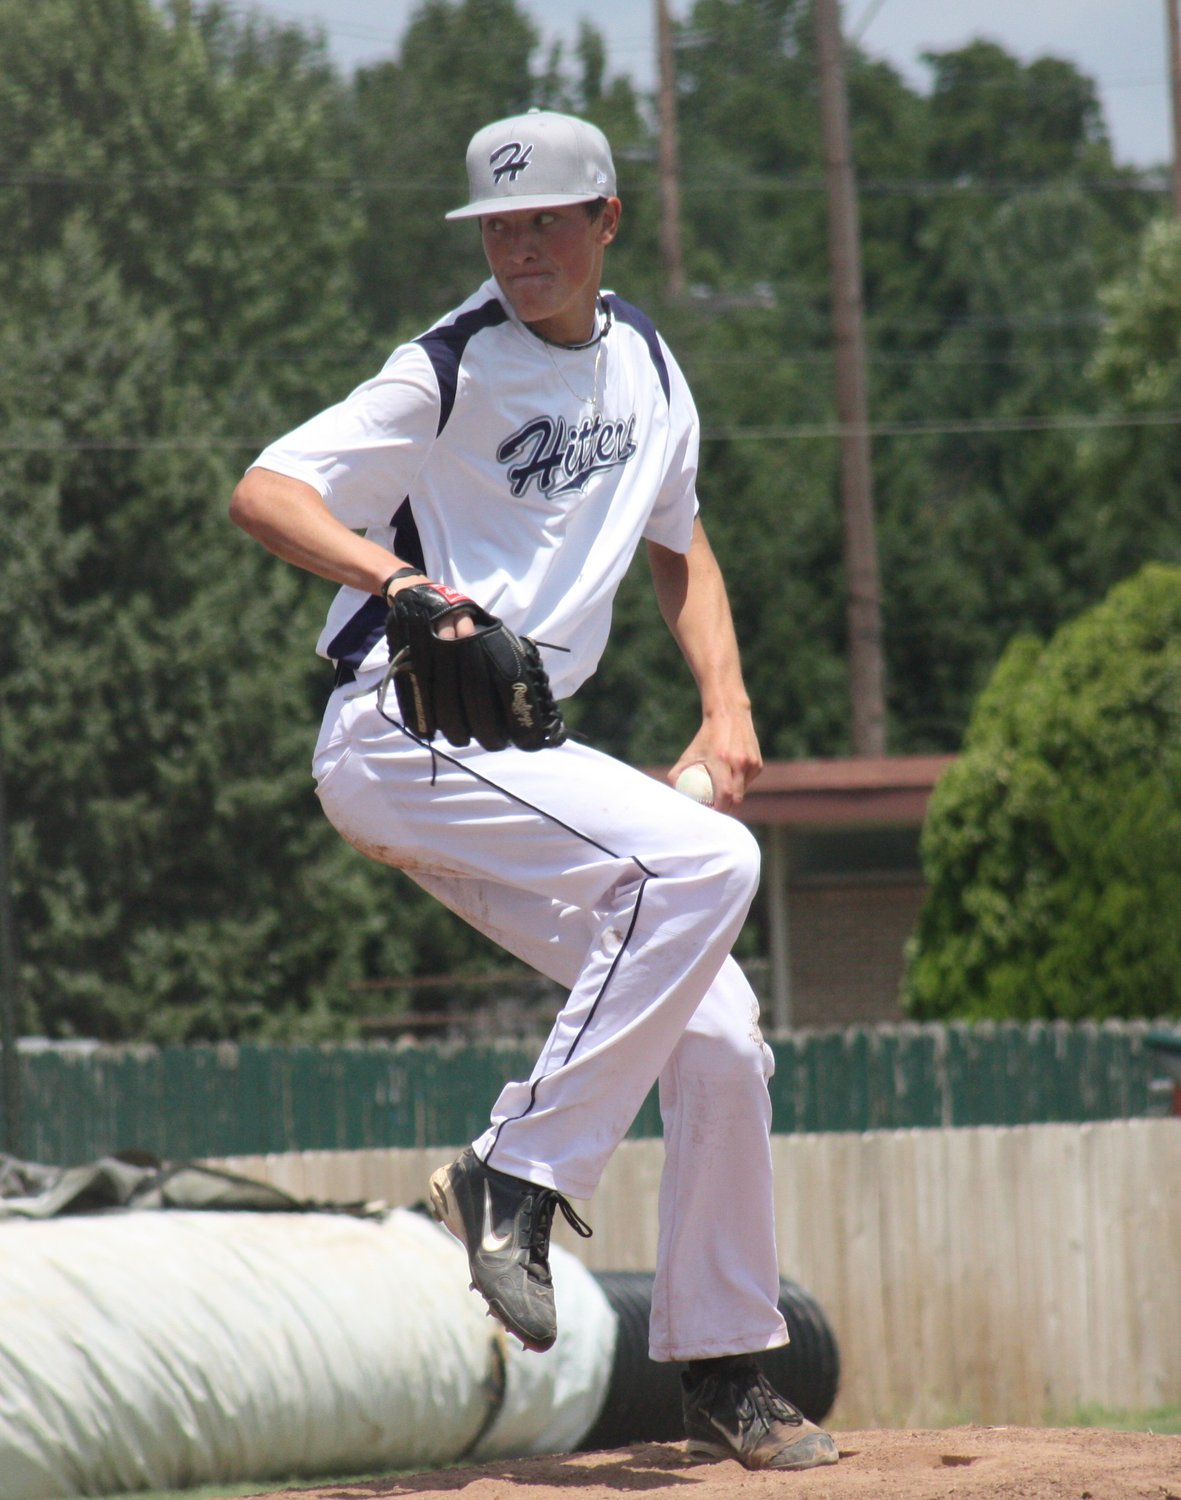 Evan Kruczynski pitching in the 2011 I94 League